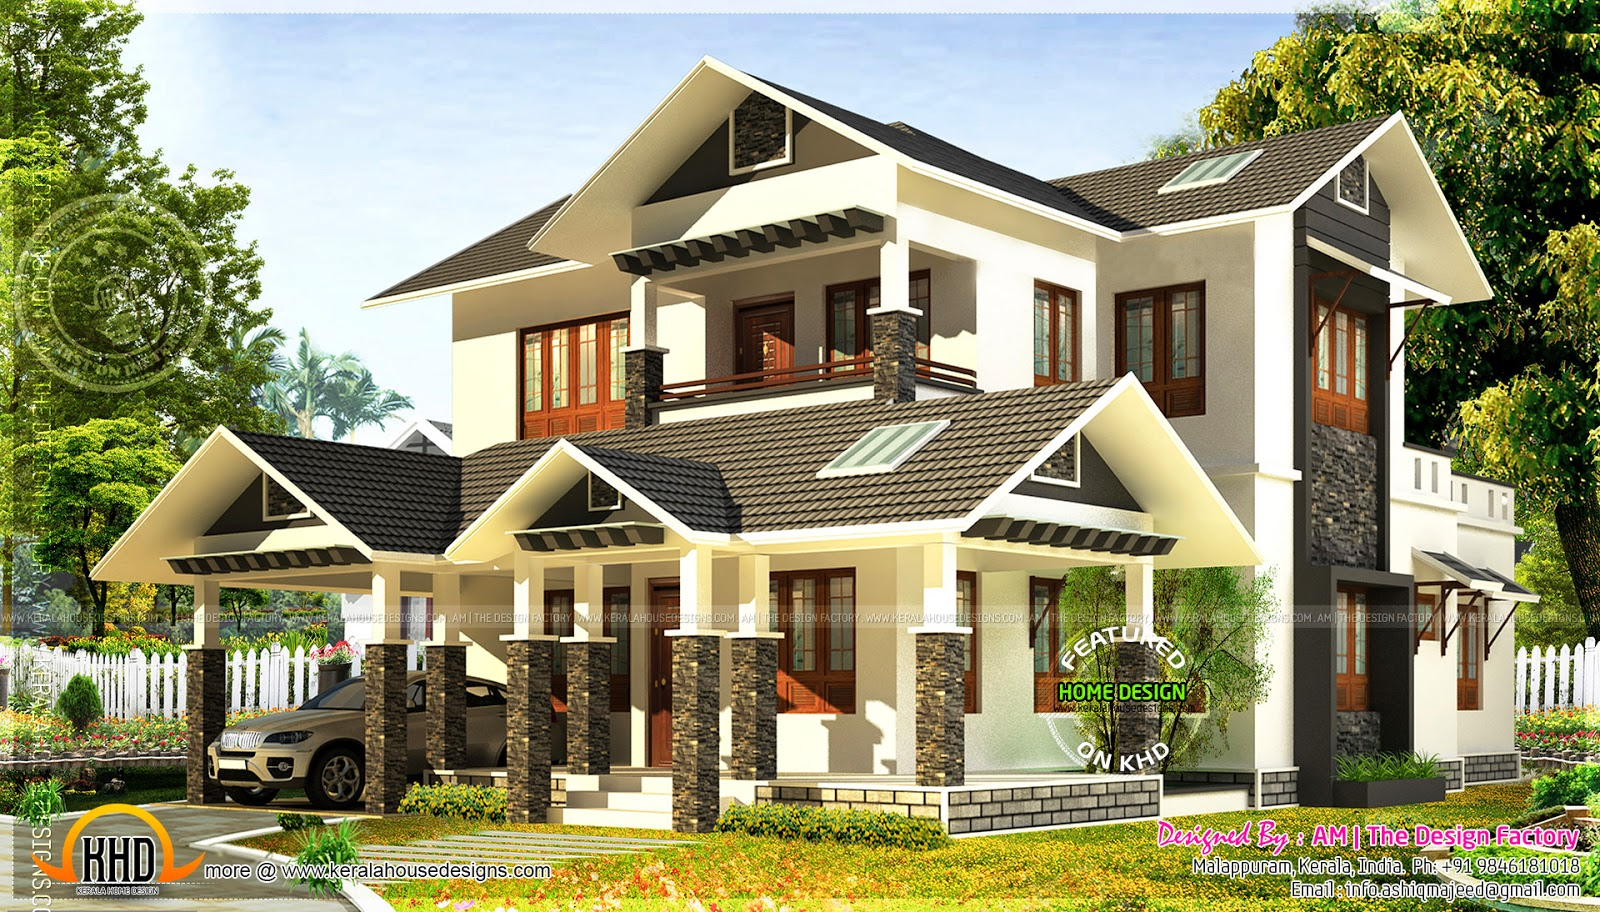 Kerala Home Design And Floor Plans: 2193 Square Feet 3